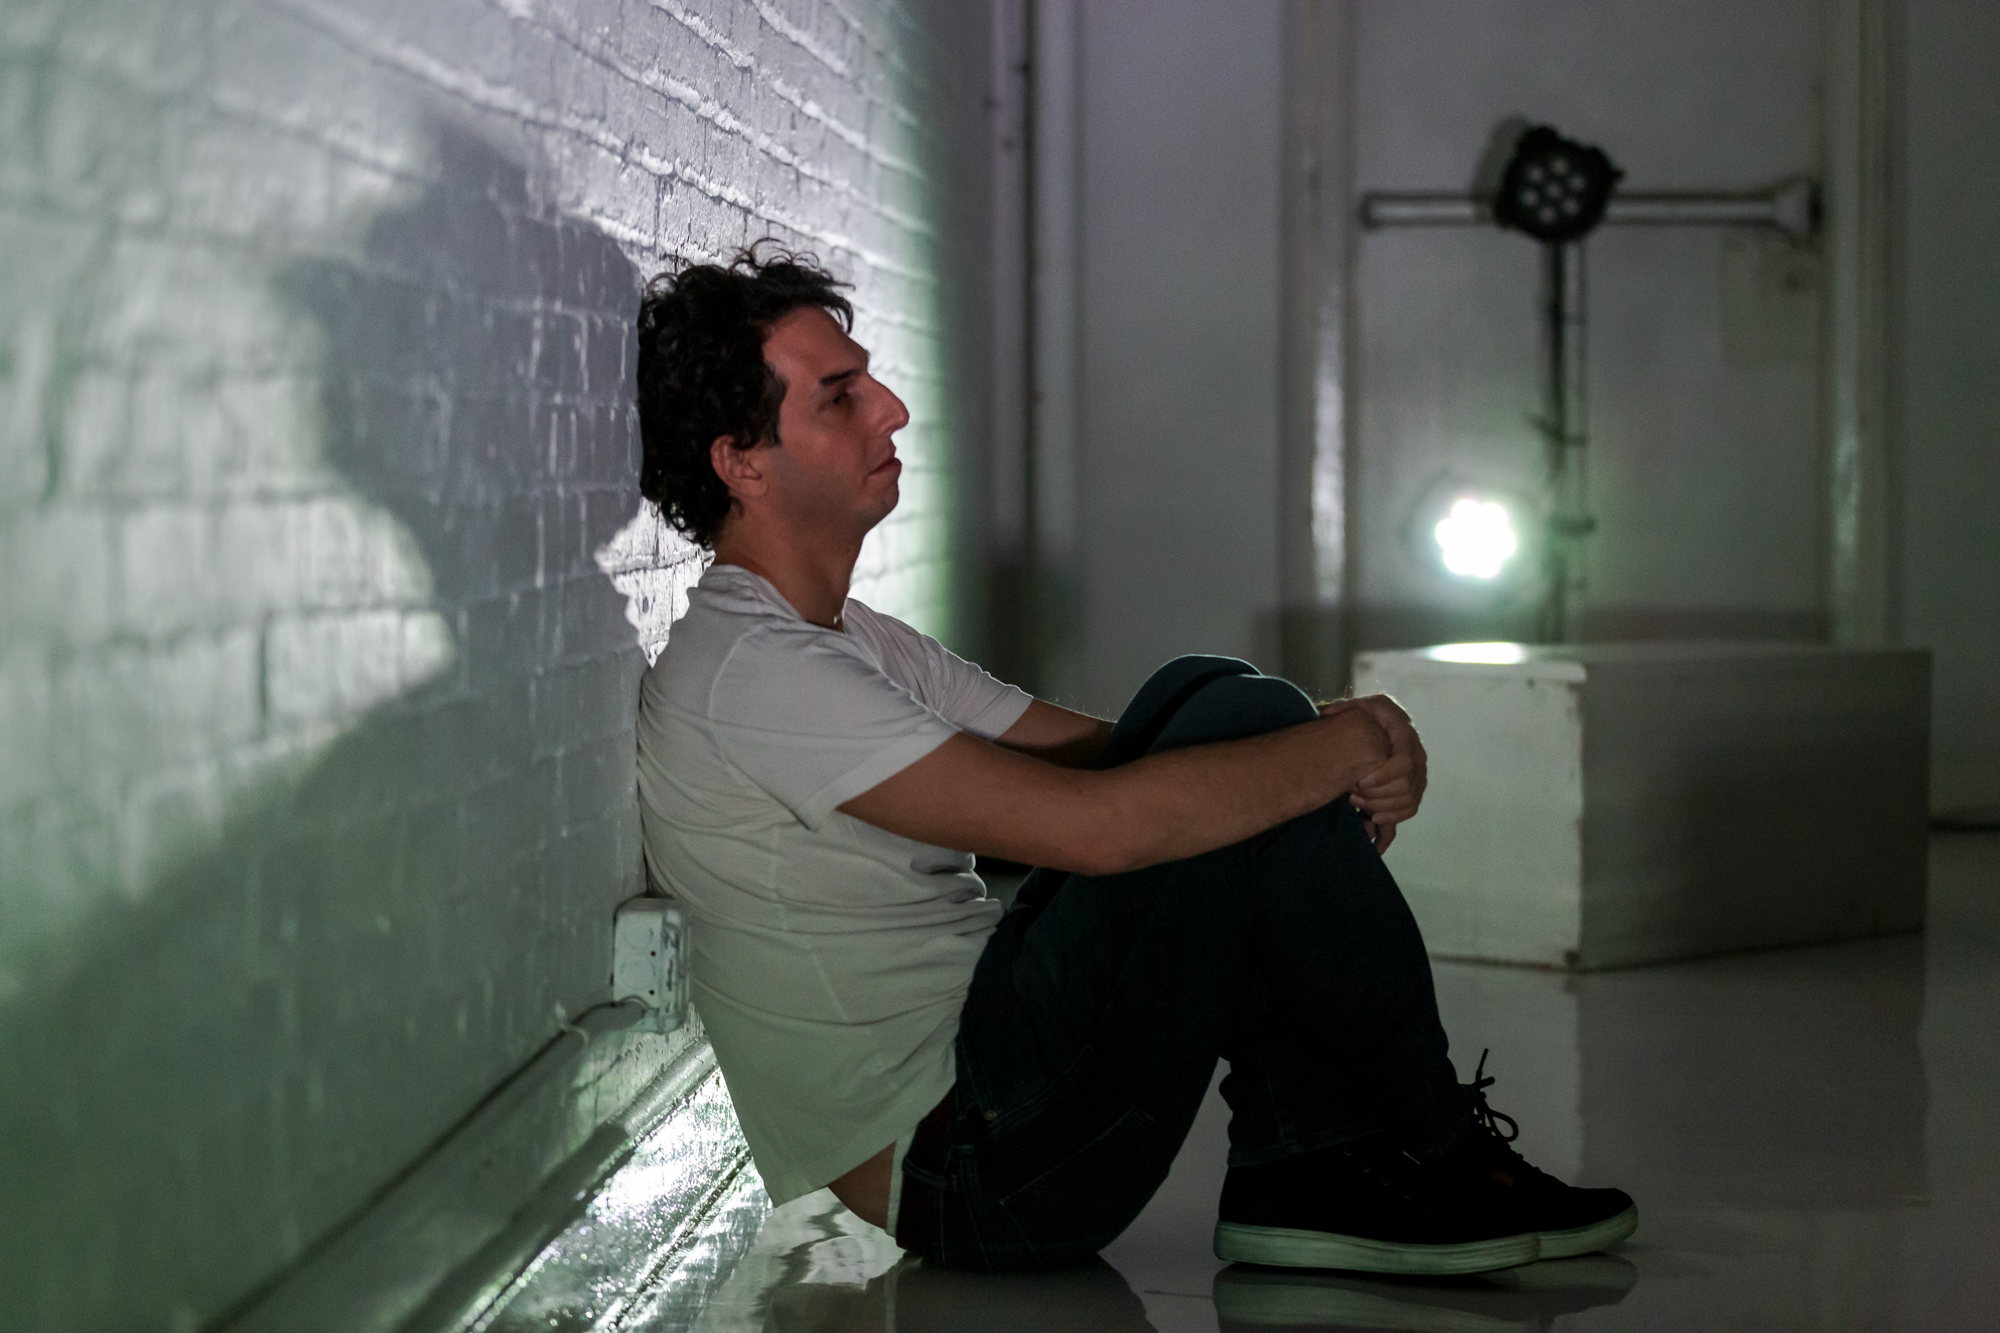 David Sauvage in EMPATH at Theaterlab. Photo by Mark Abramson.